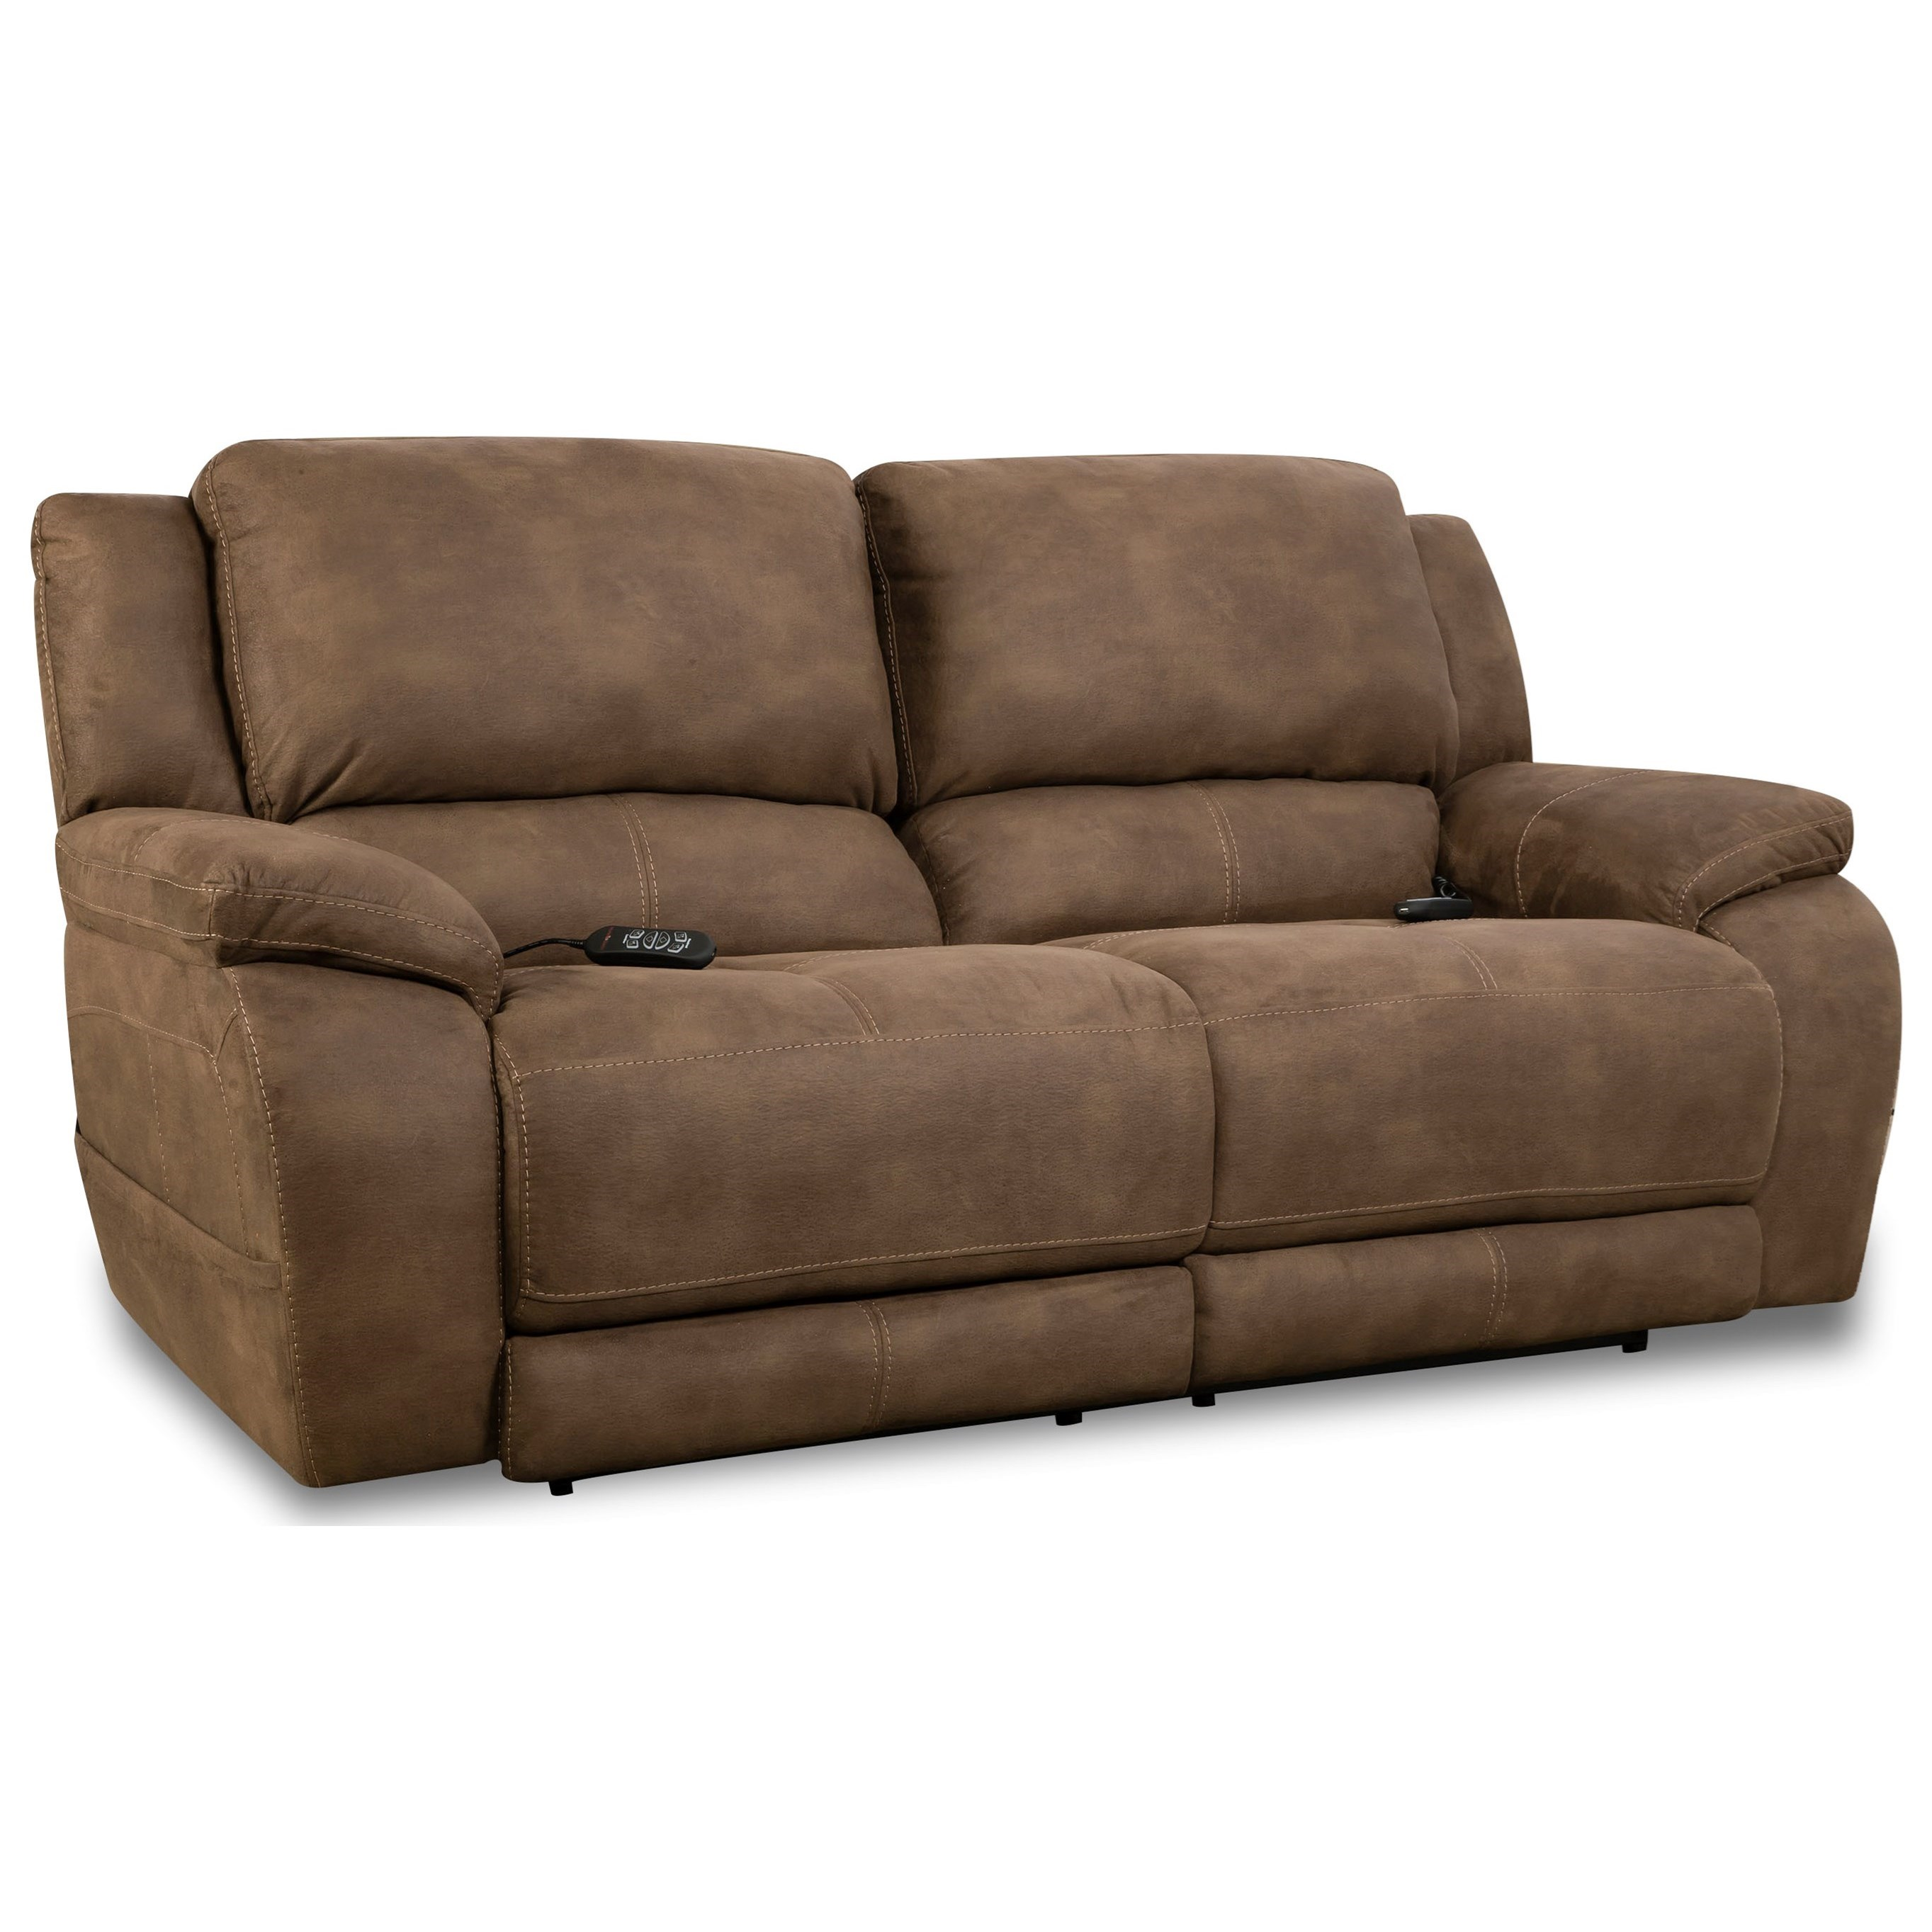 Explorer Double Reclining Power Sofa by HomeStretch at Johnny Janosik